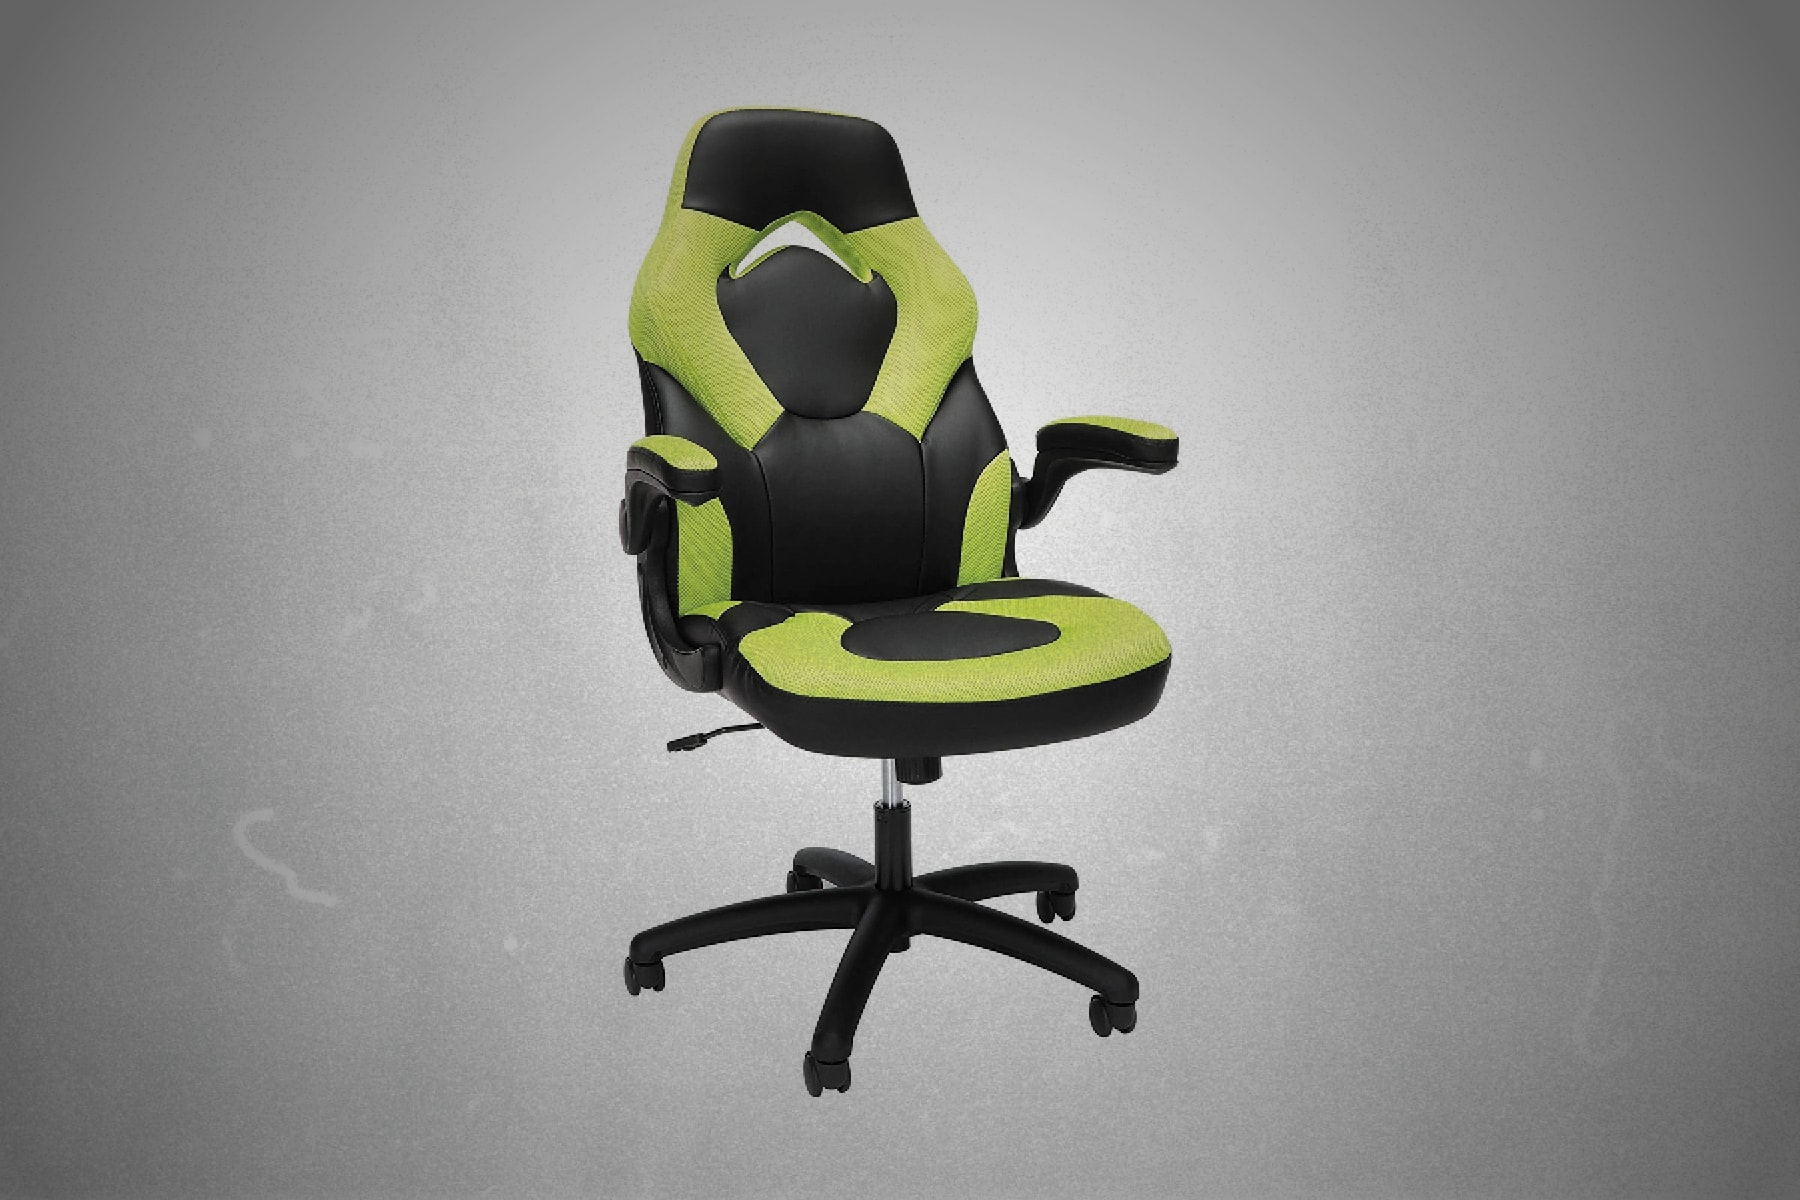 best cheap gaming chairs